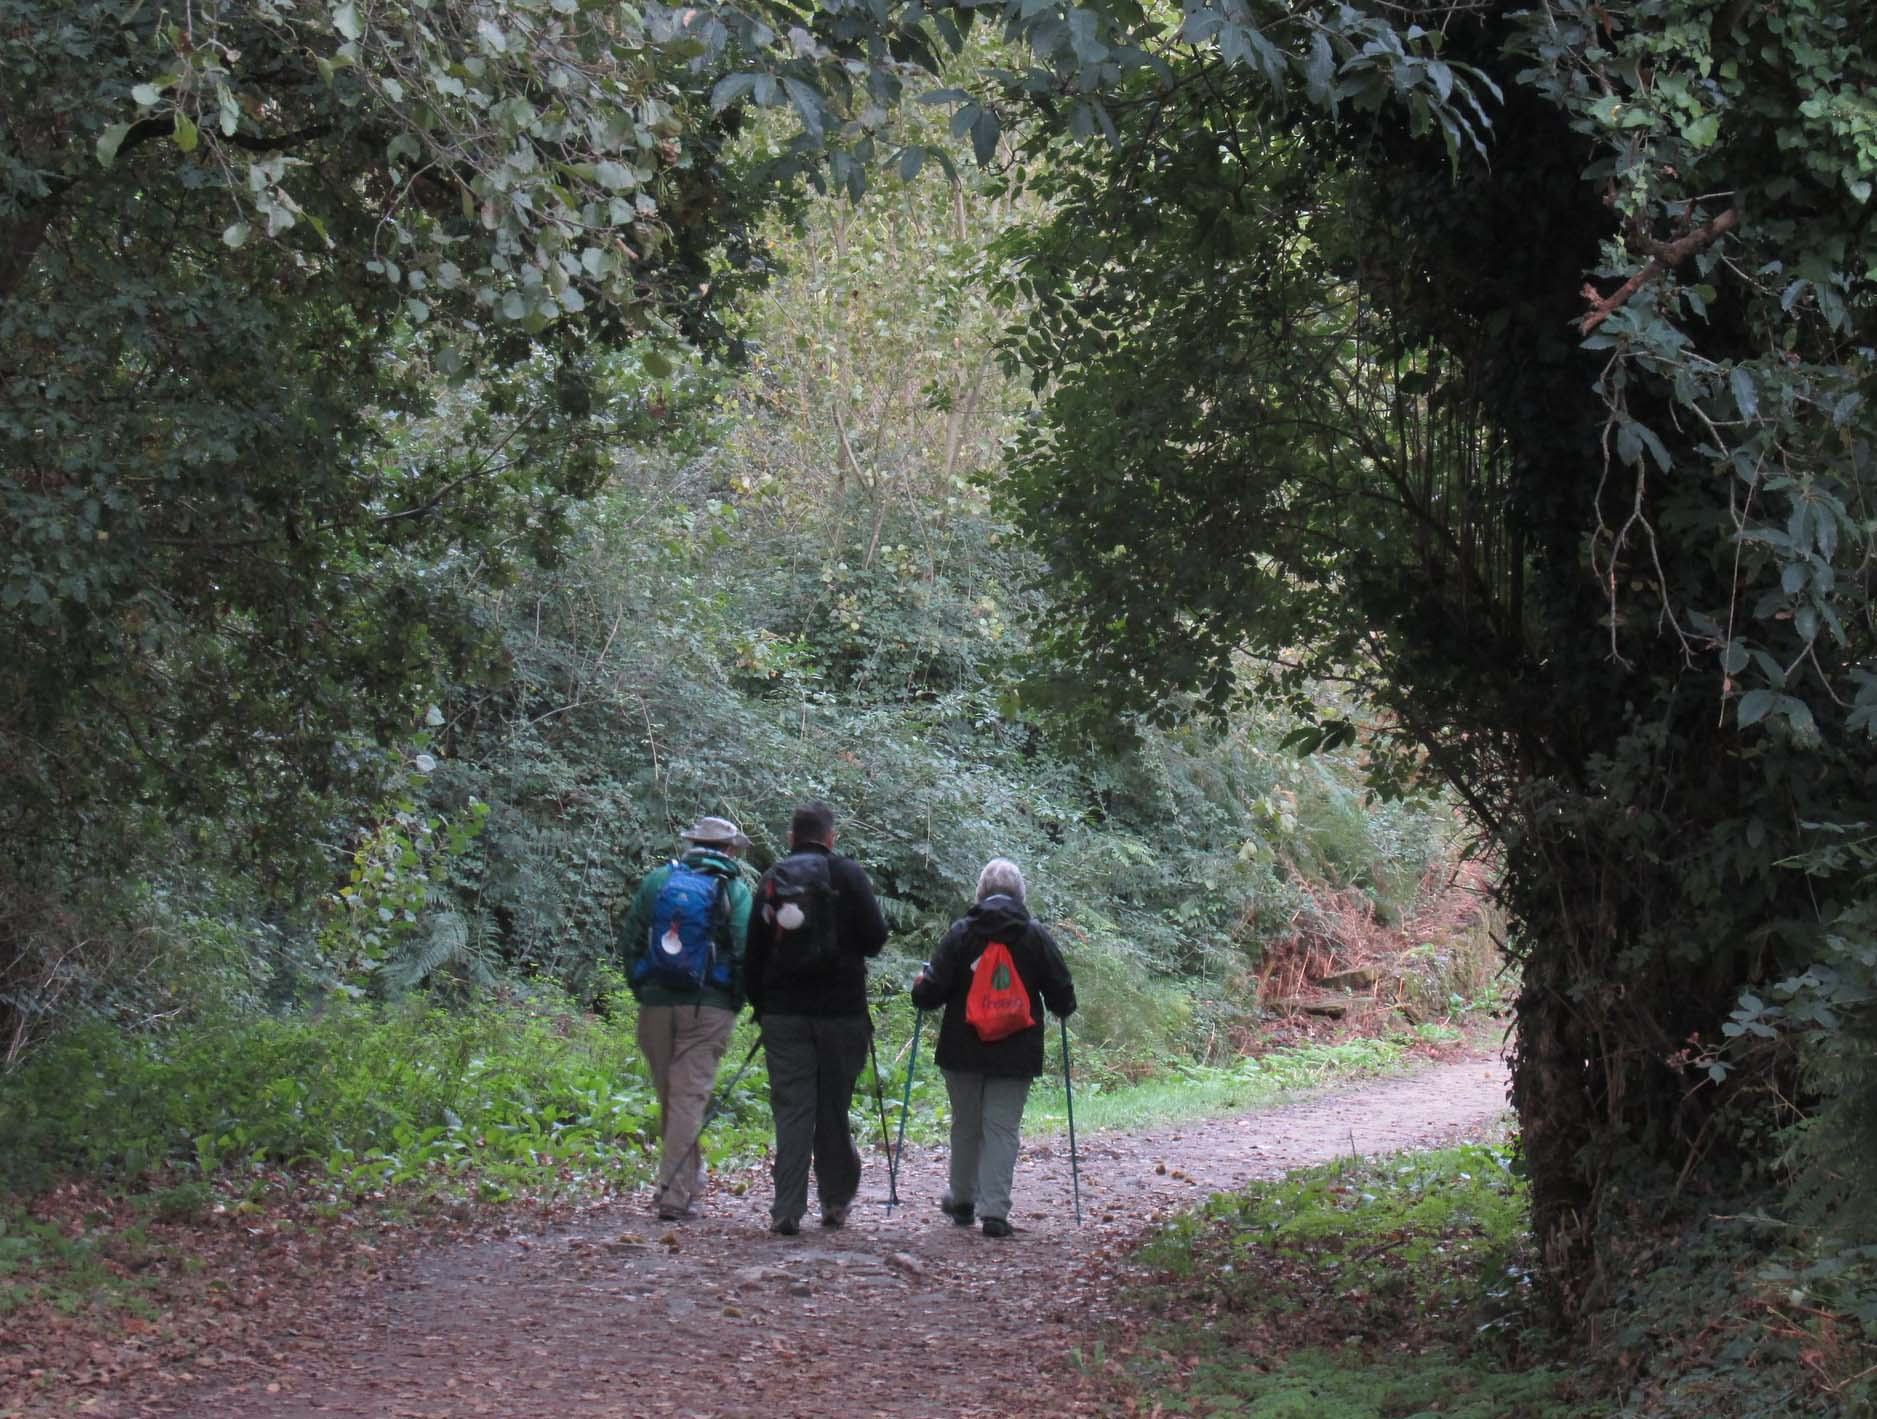 Camino de Santiago Tour - October 21, 2019